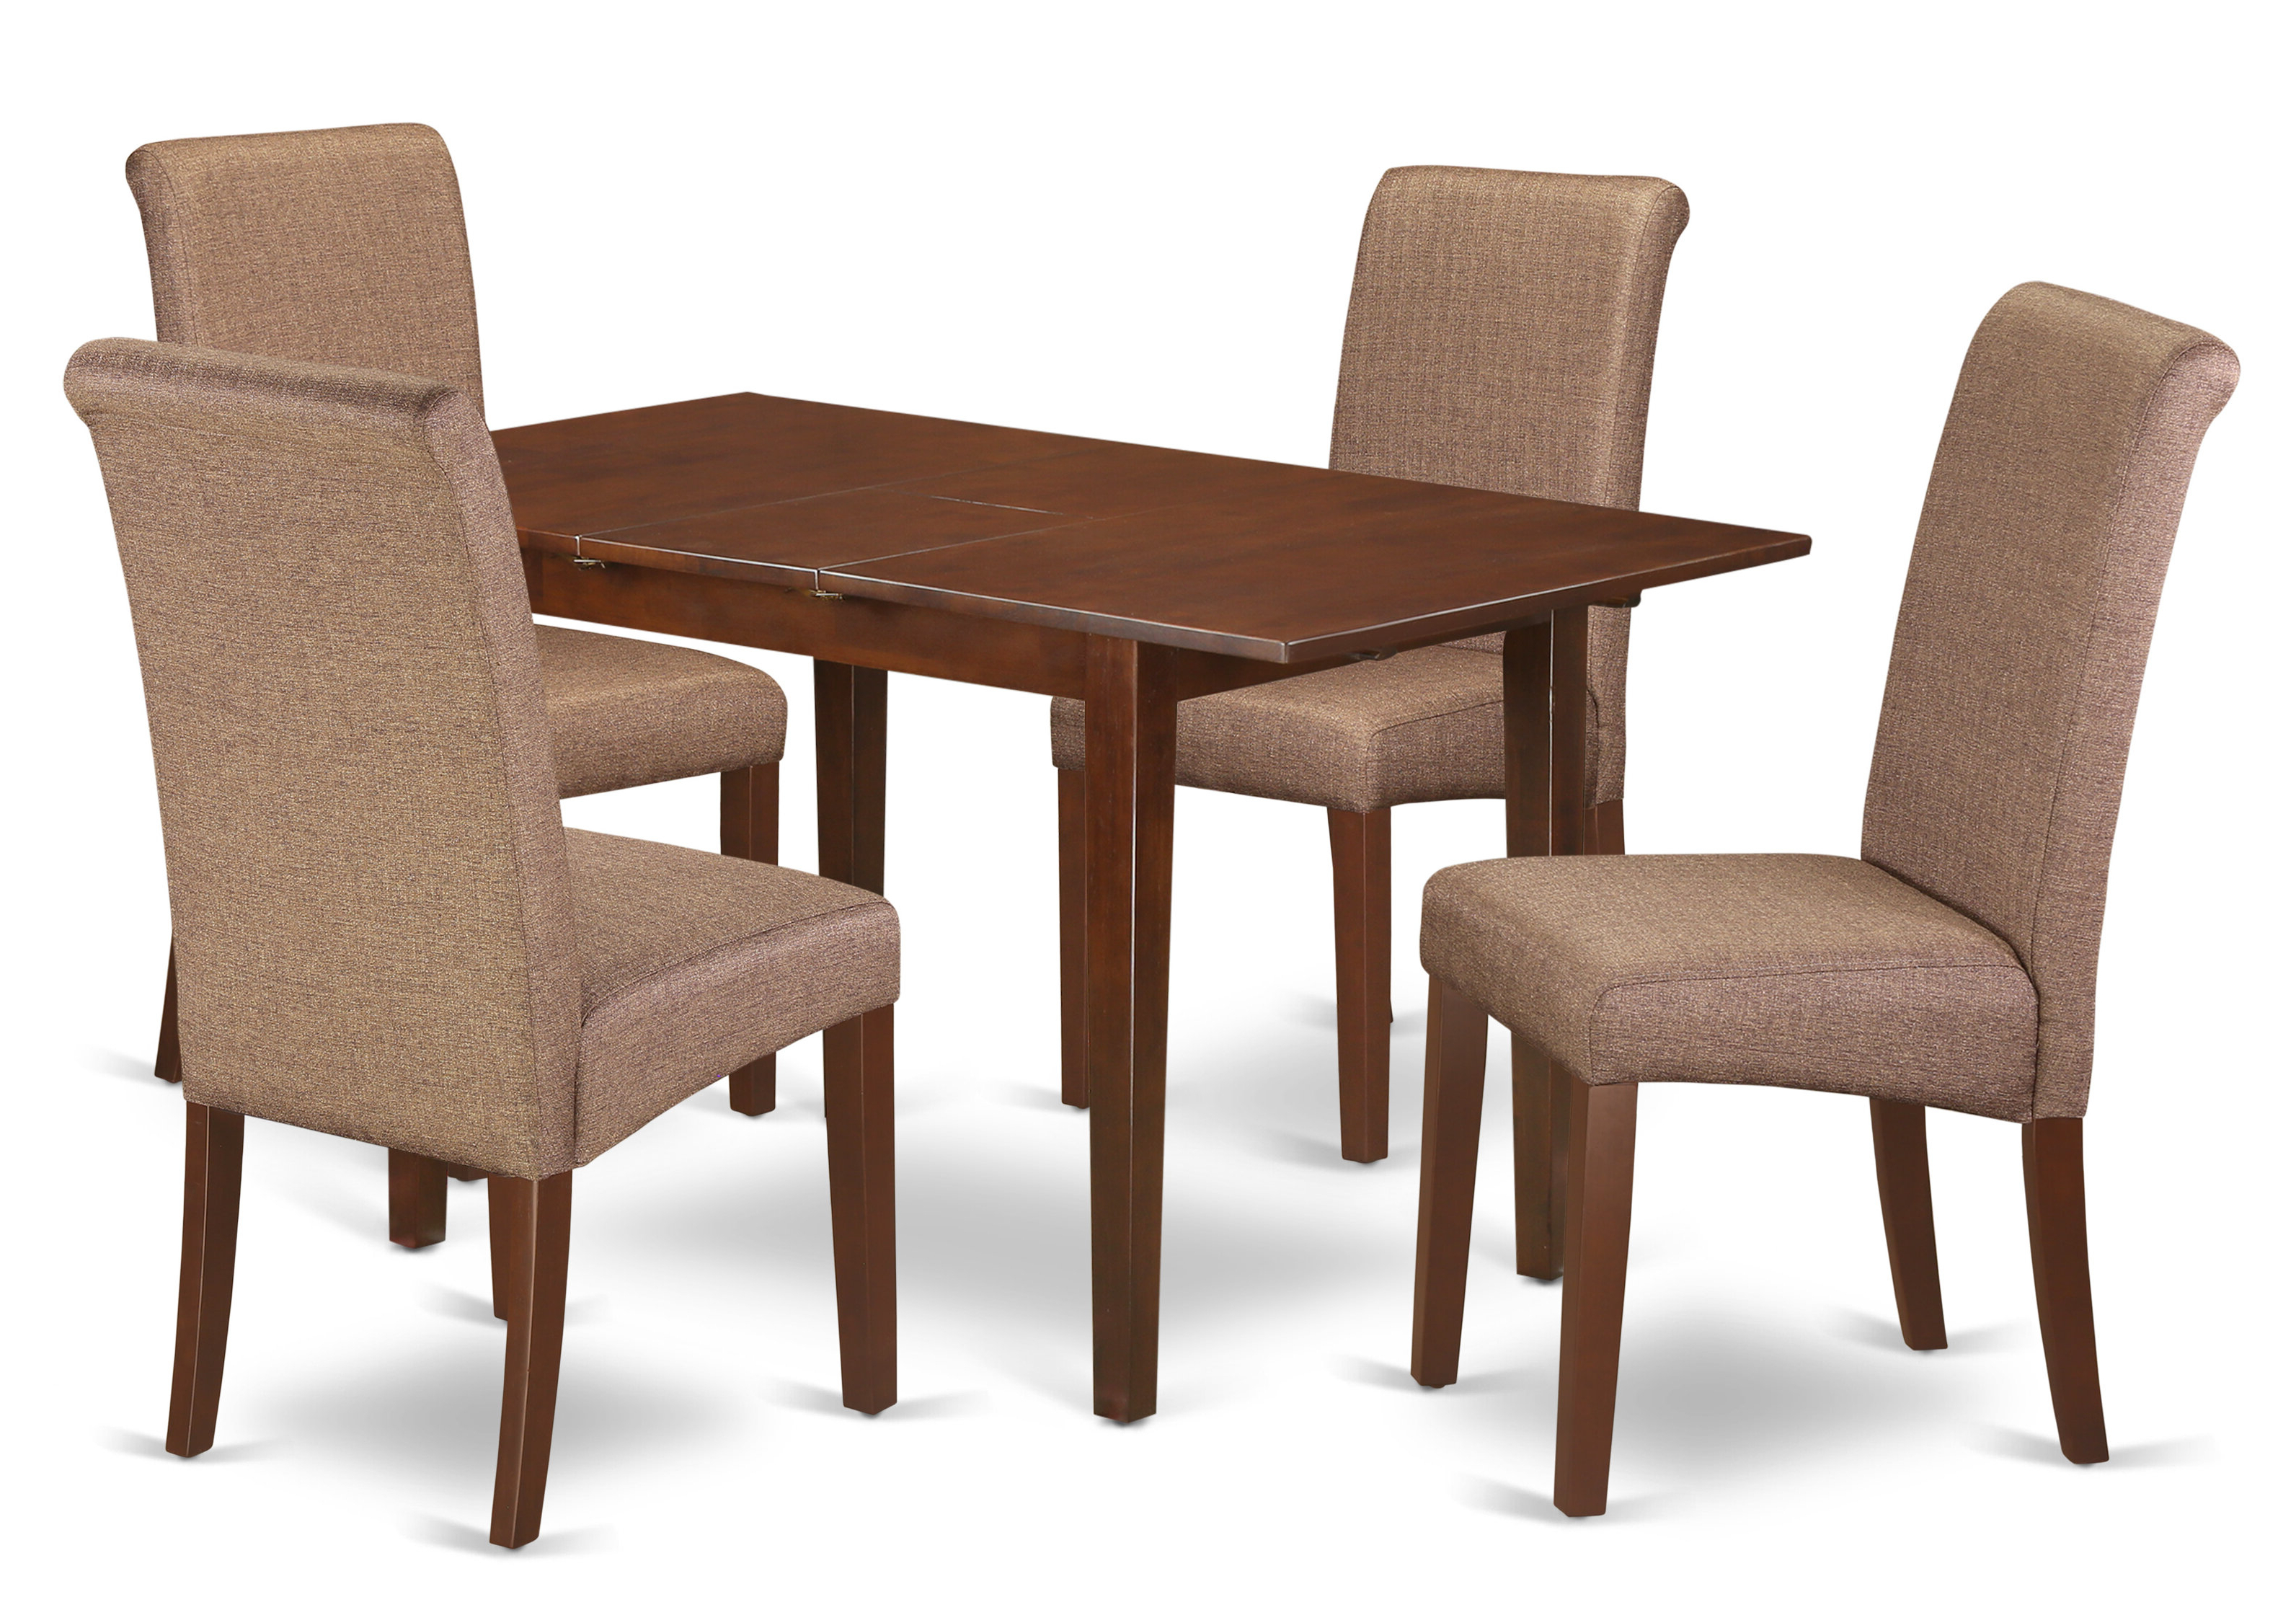 Widely Used Emmeline 5 Piece Breakfast Nook Dining Sets In Winston Porter Sarai Kitchen Table 5 Piece Extendable Solid Wood Breakfast  Nook Dining Set (View 20 of 20)